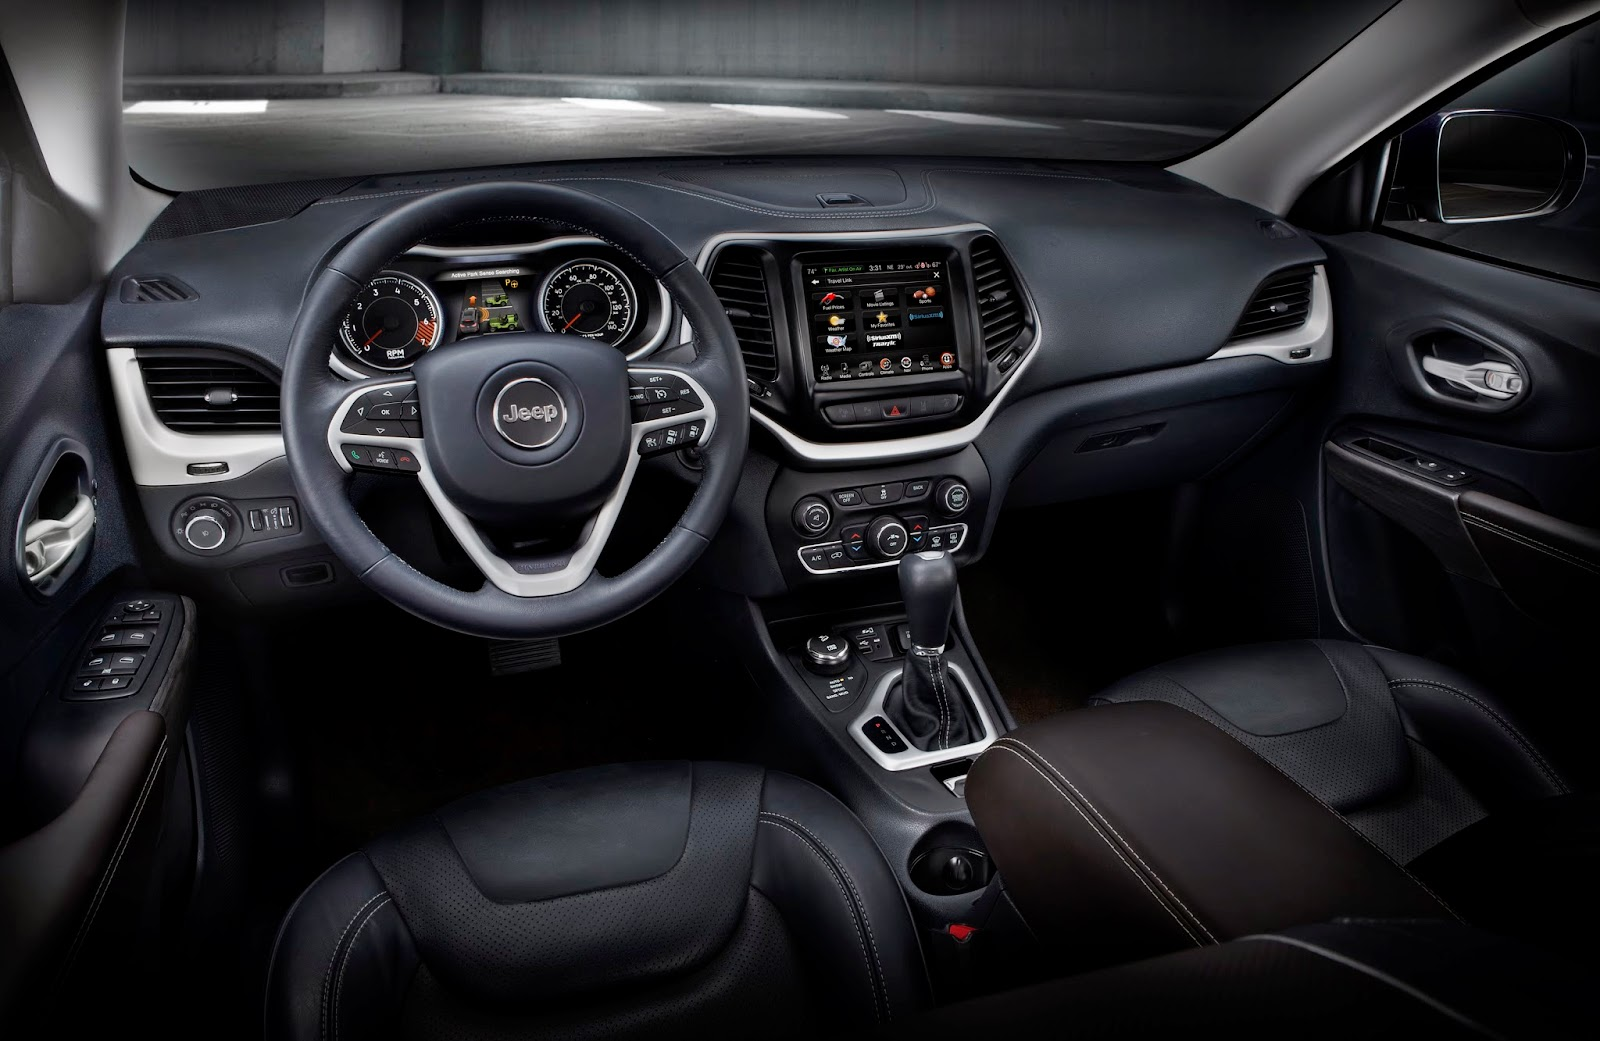 Interior view of the 2014 Jeep Cherokee